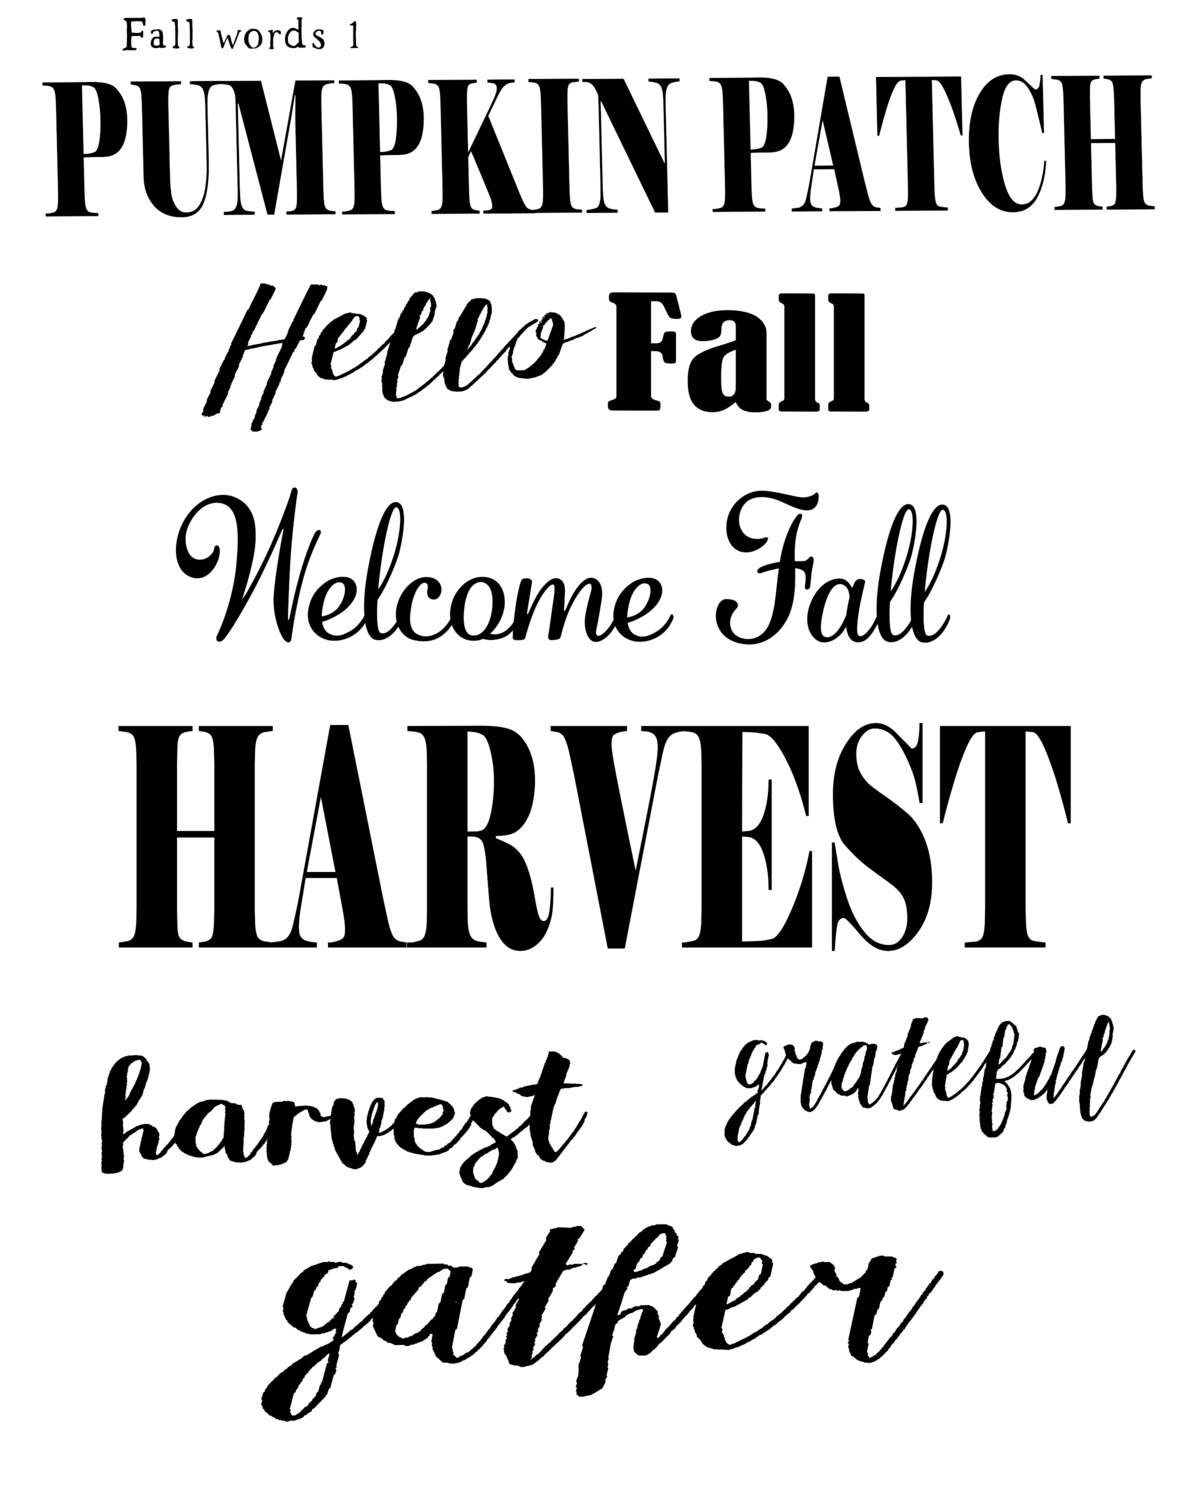 Fall Words 1 12x16 stencil